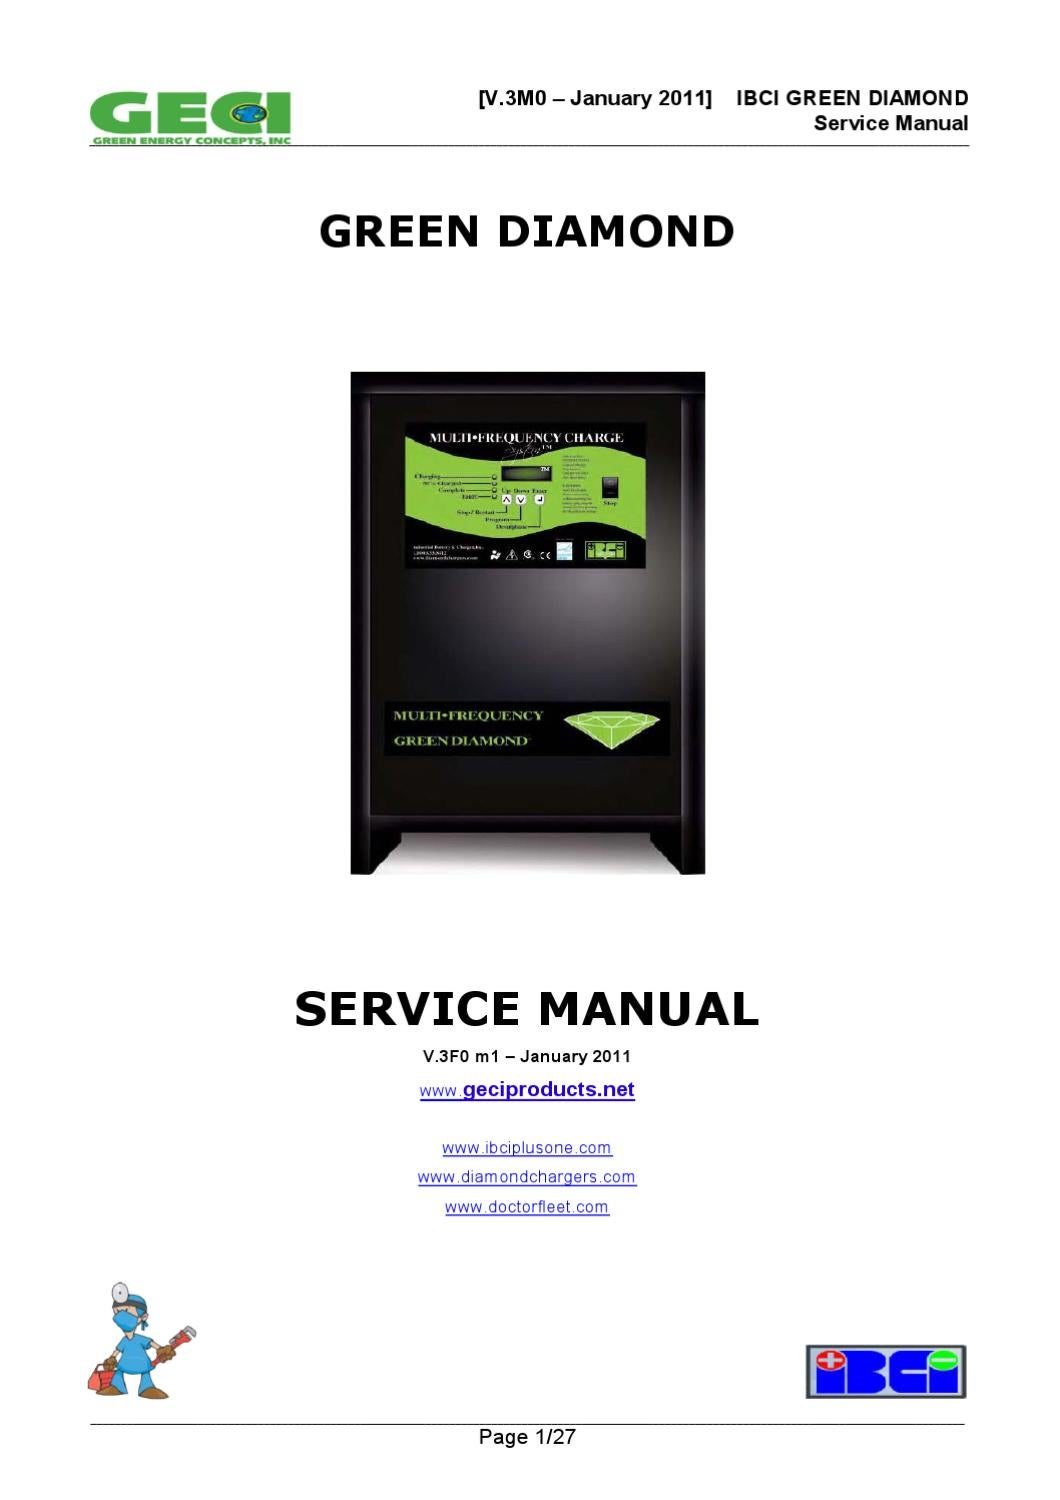 Manuale Green Bassi Srl By Issuu Battery Desulphation Progress Monitor